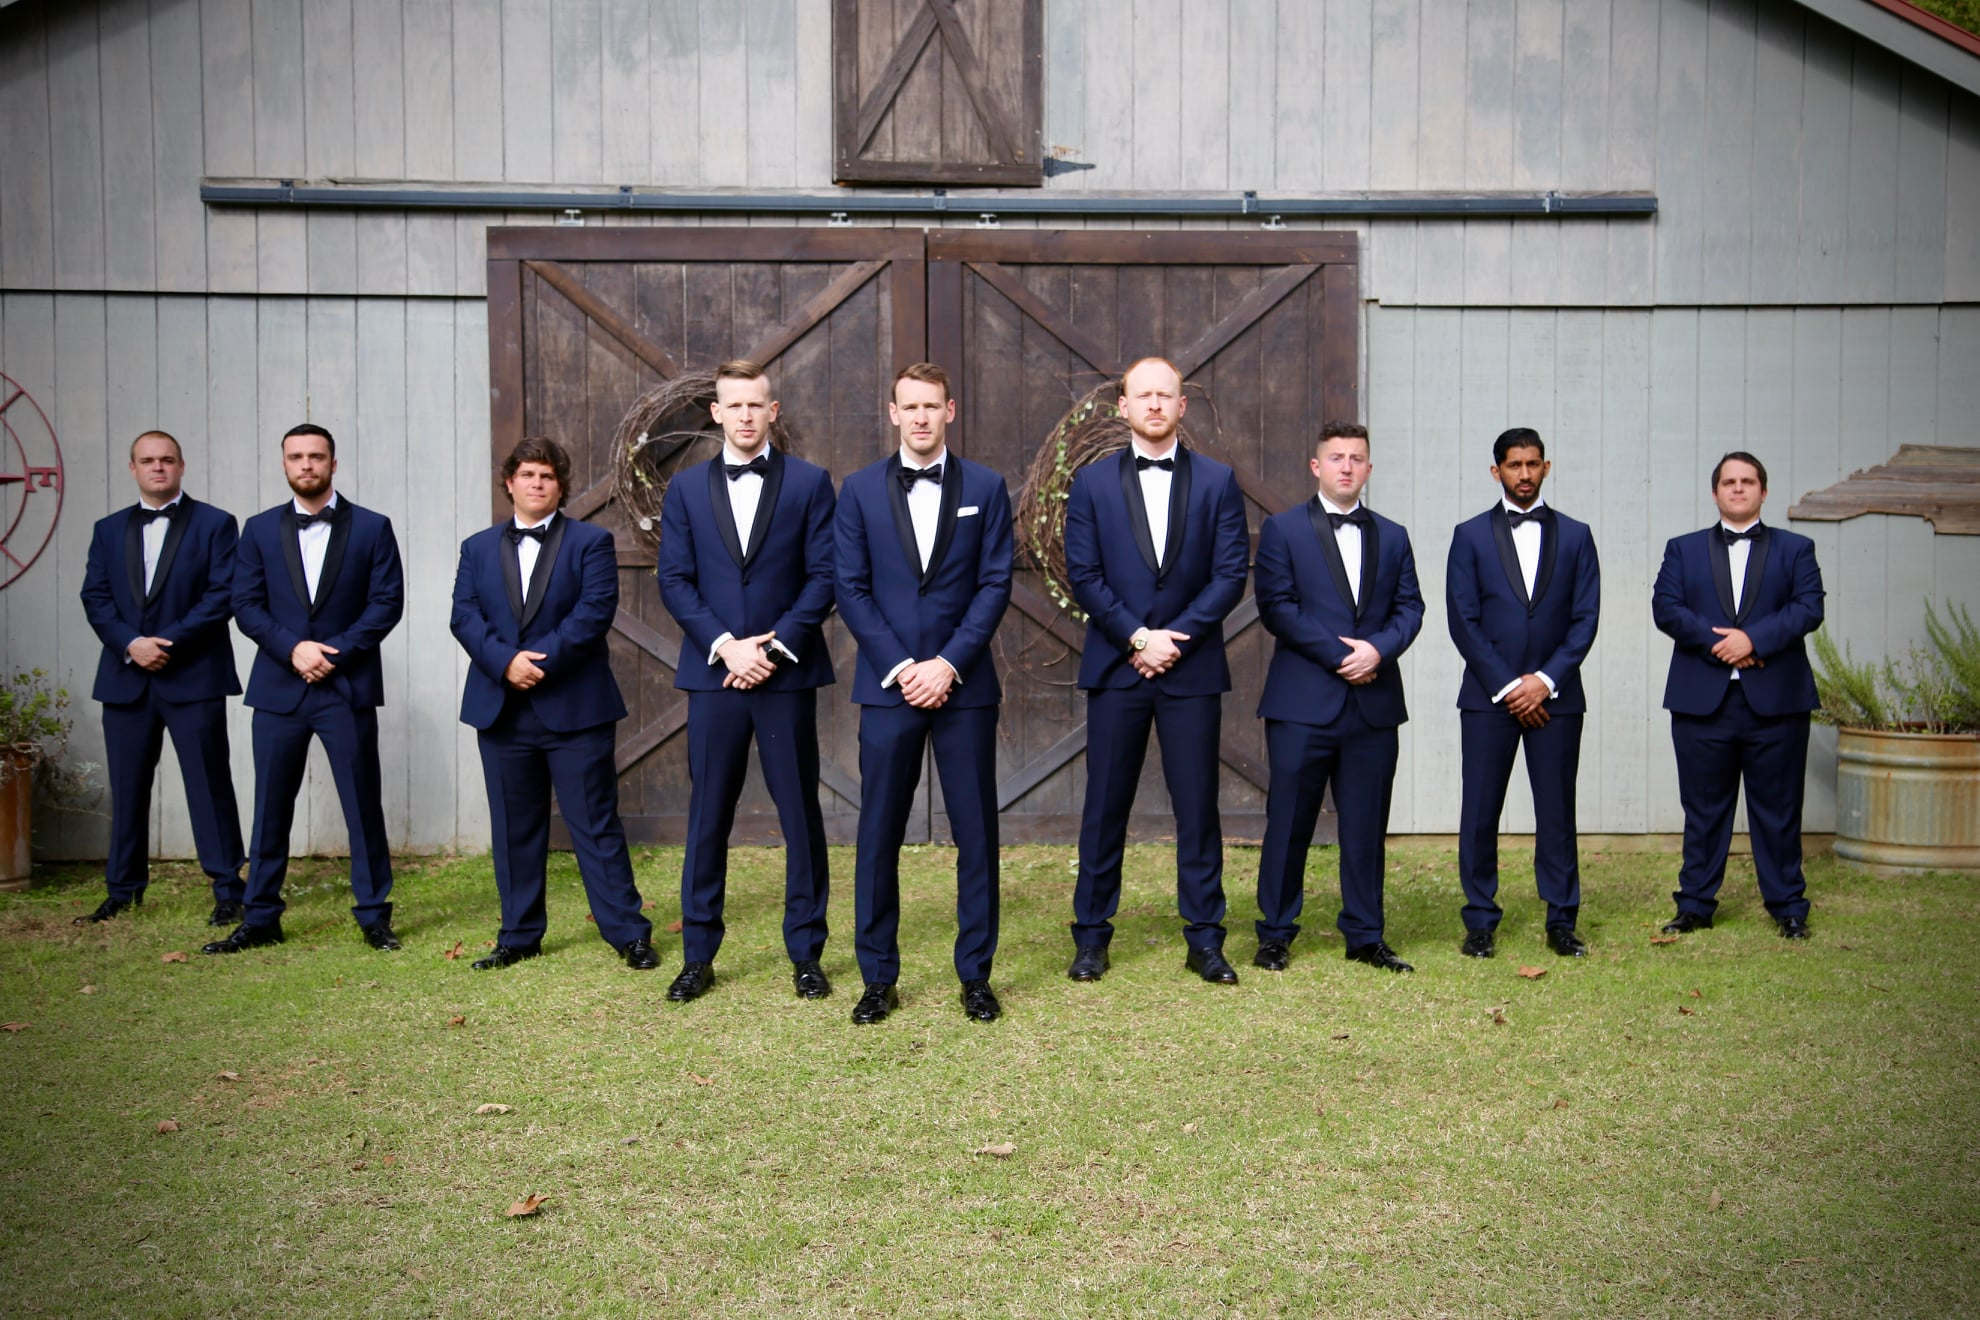 Groomsmen photo ideas and inspiration with groom navy blue suit